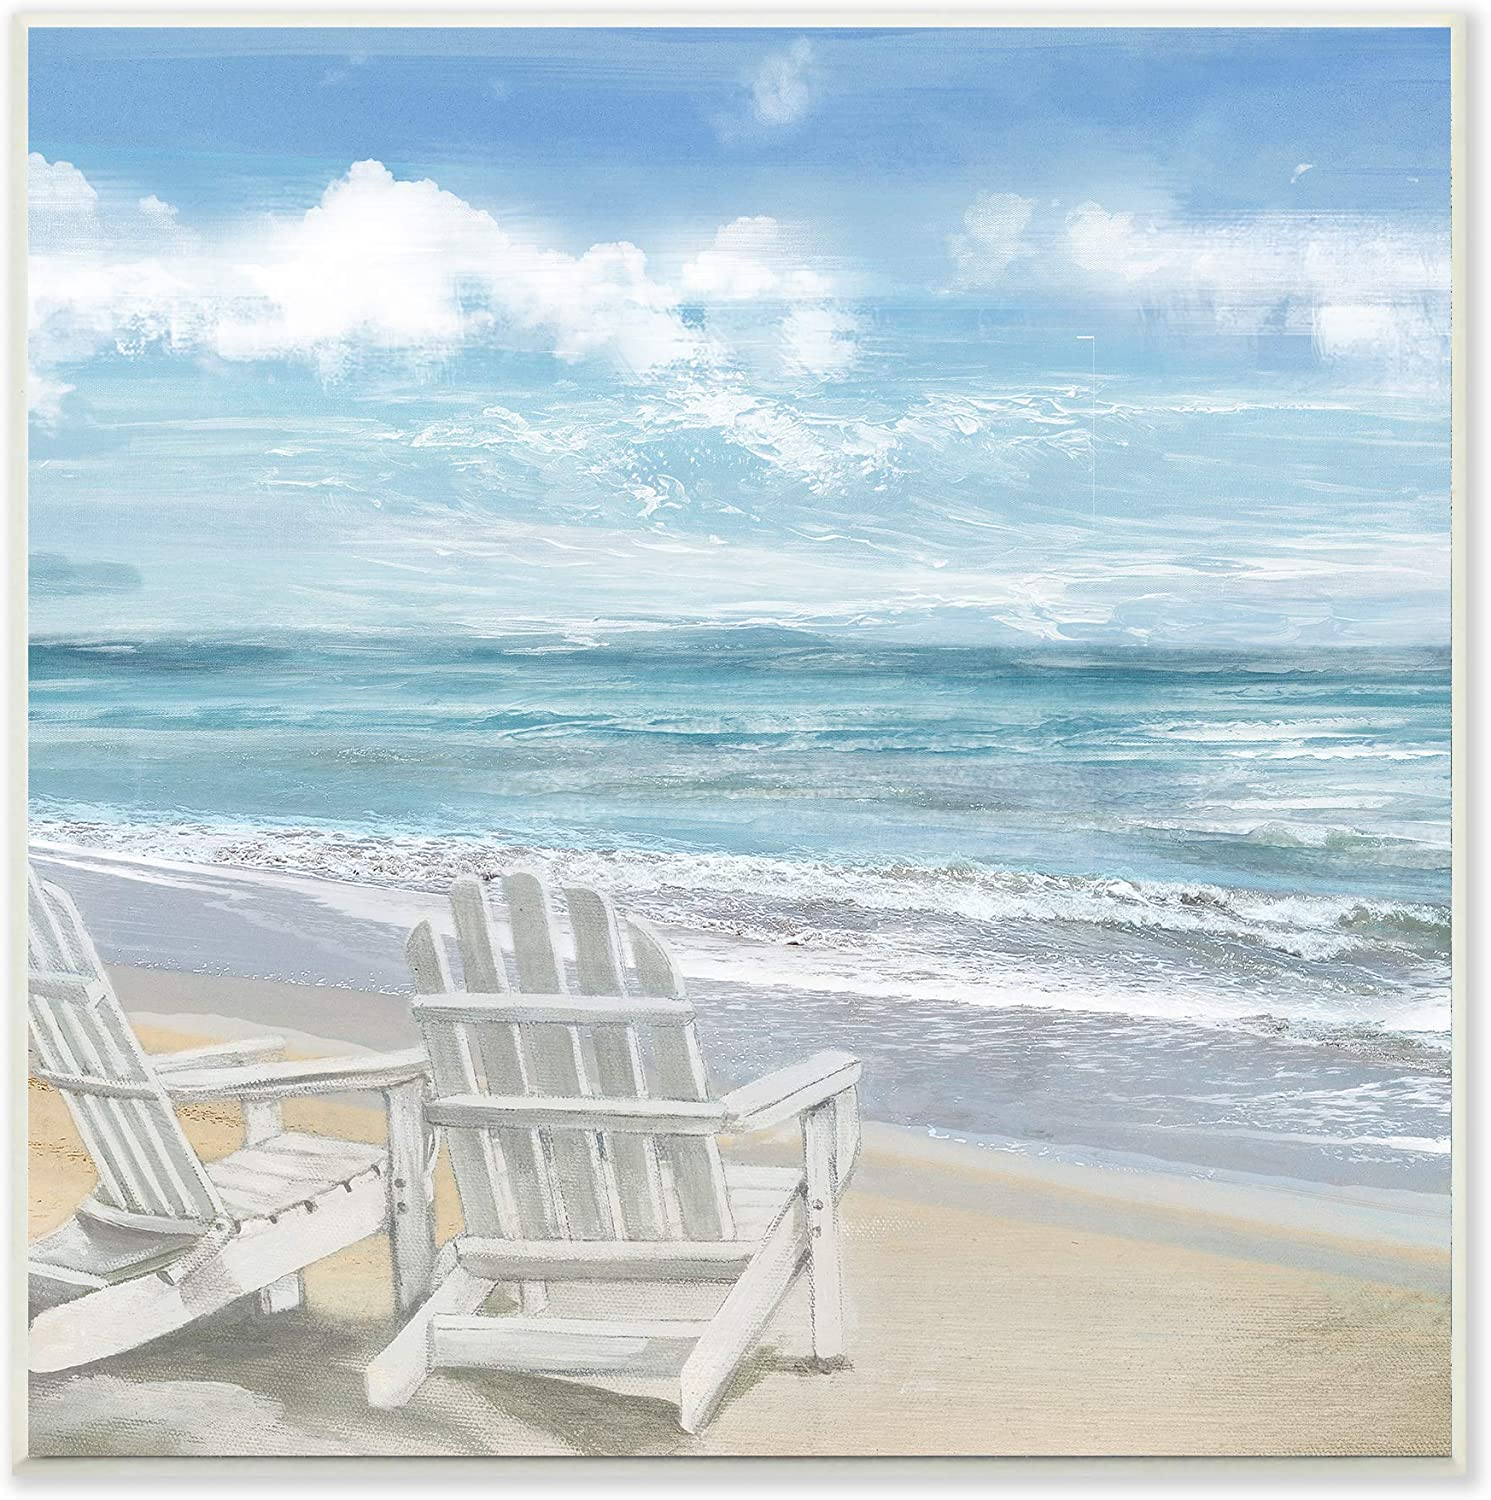 The Stupell Home Décor Collection White Adirondack Chairs on The Beach Painting Wall Plaque Art, 12 x 12, Multi-Color